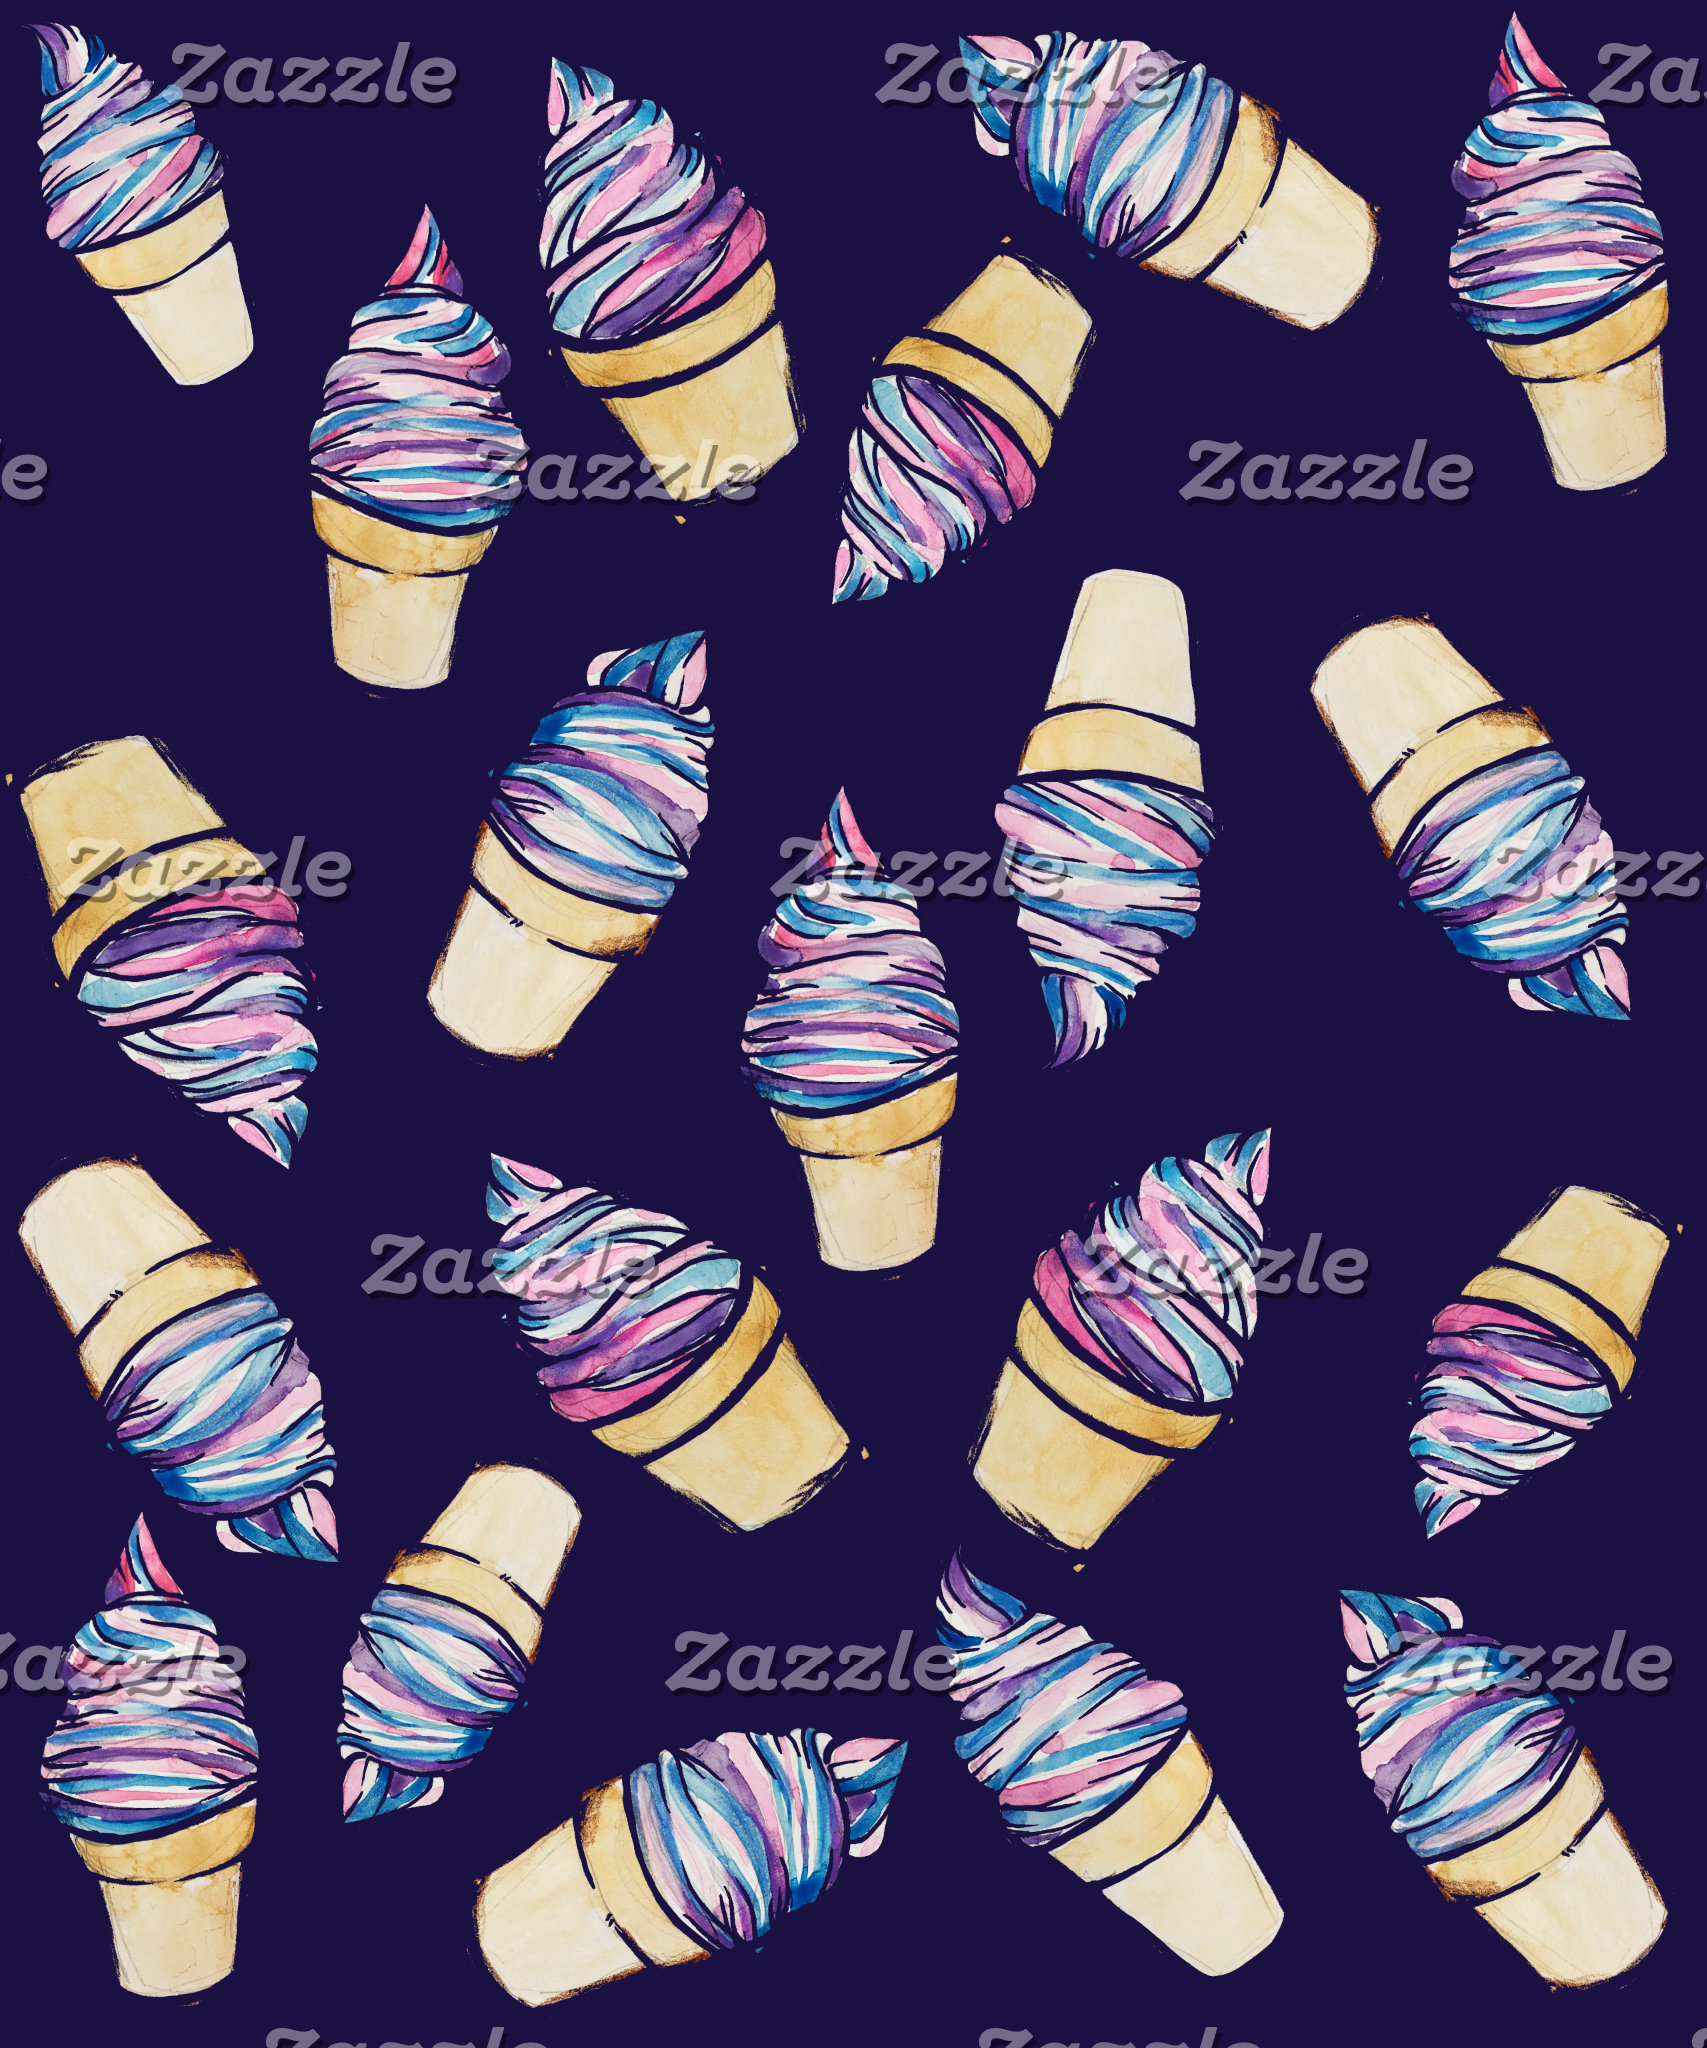 Ice Cream Cone retro dreams